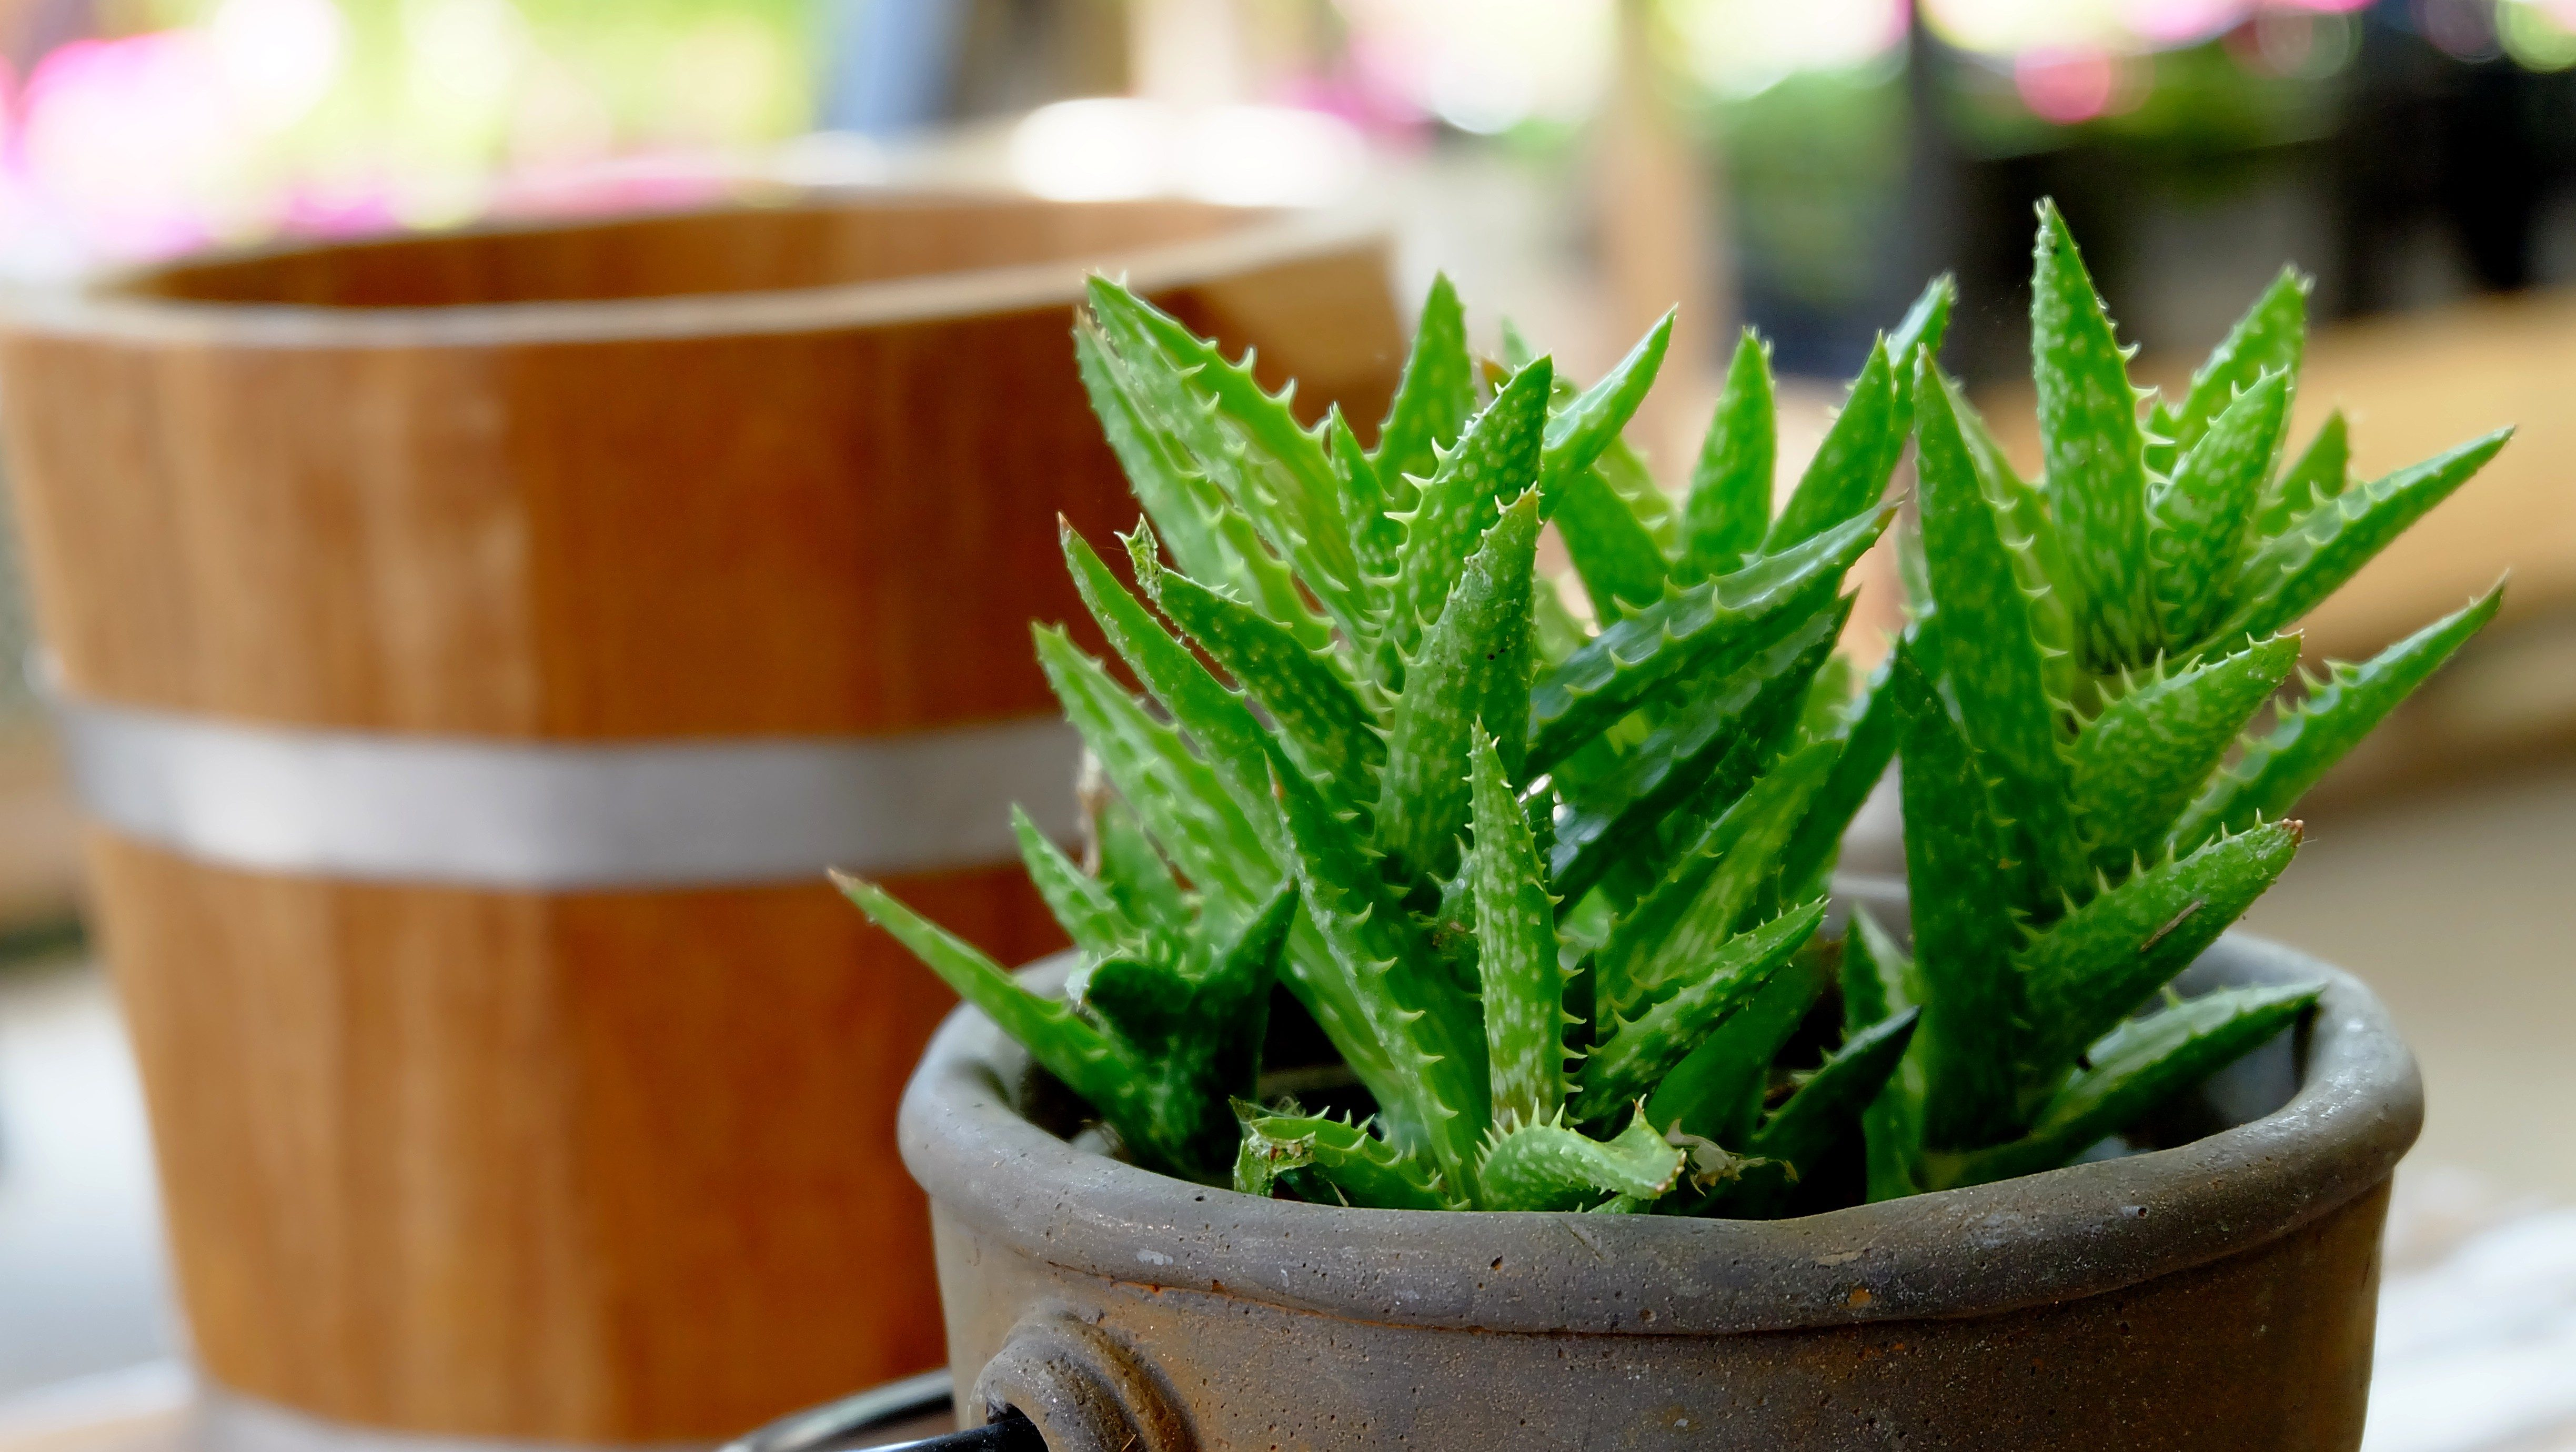 Aloe vera plants in flower pot on vintage Wooden table background.